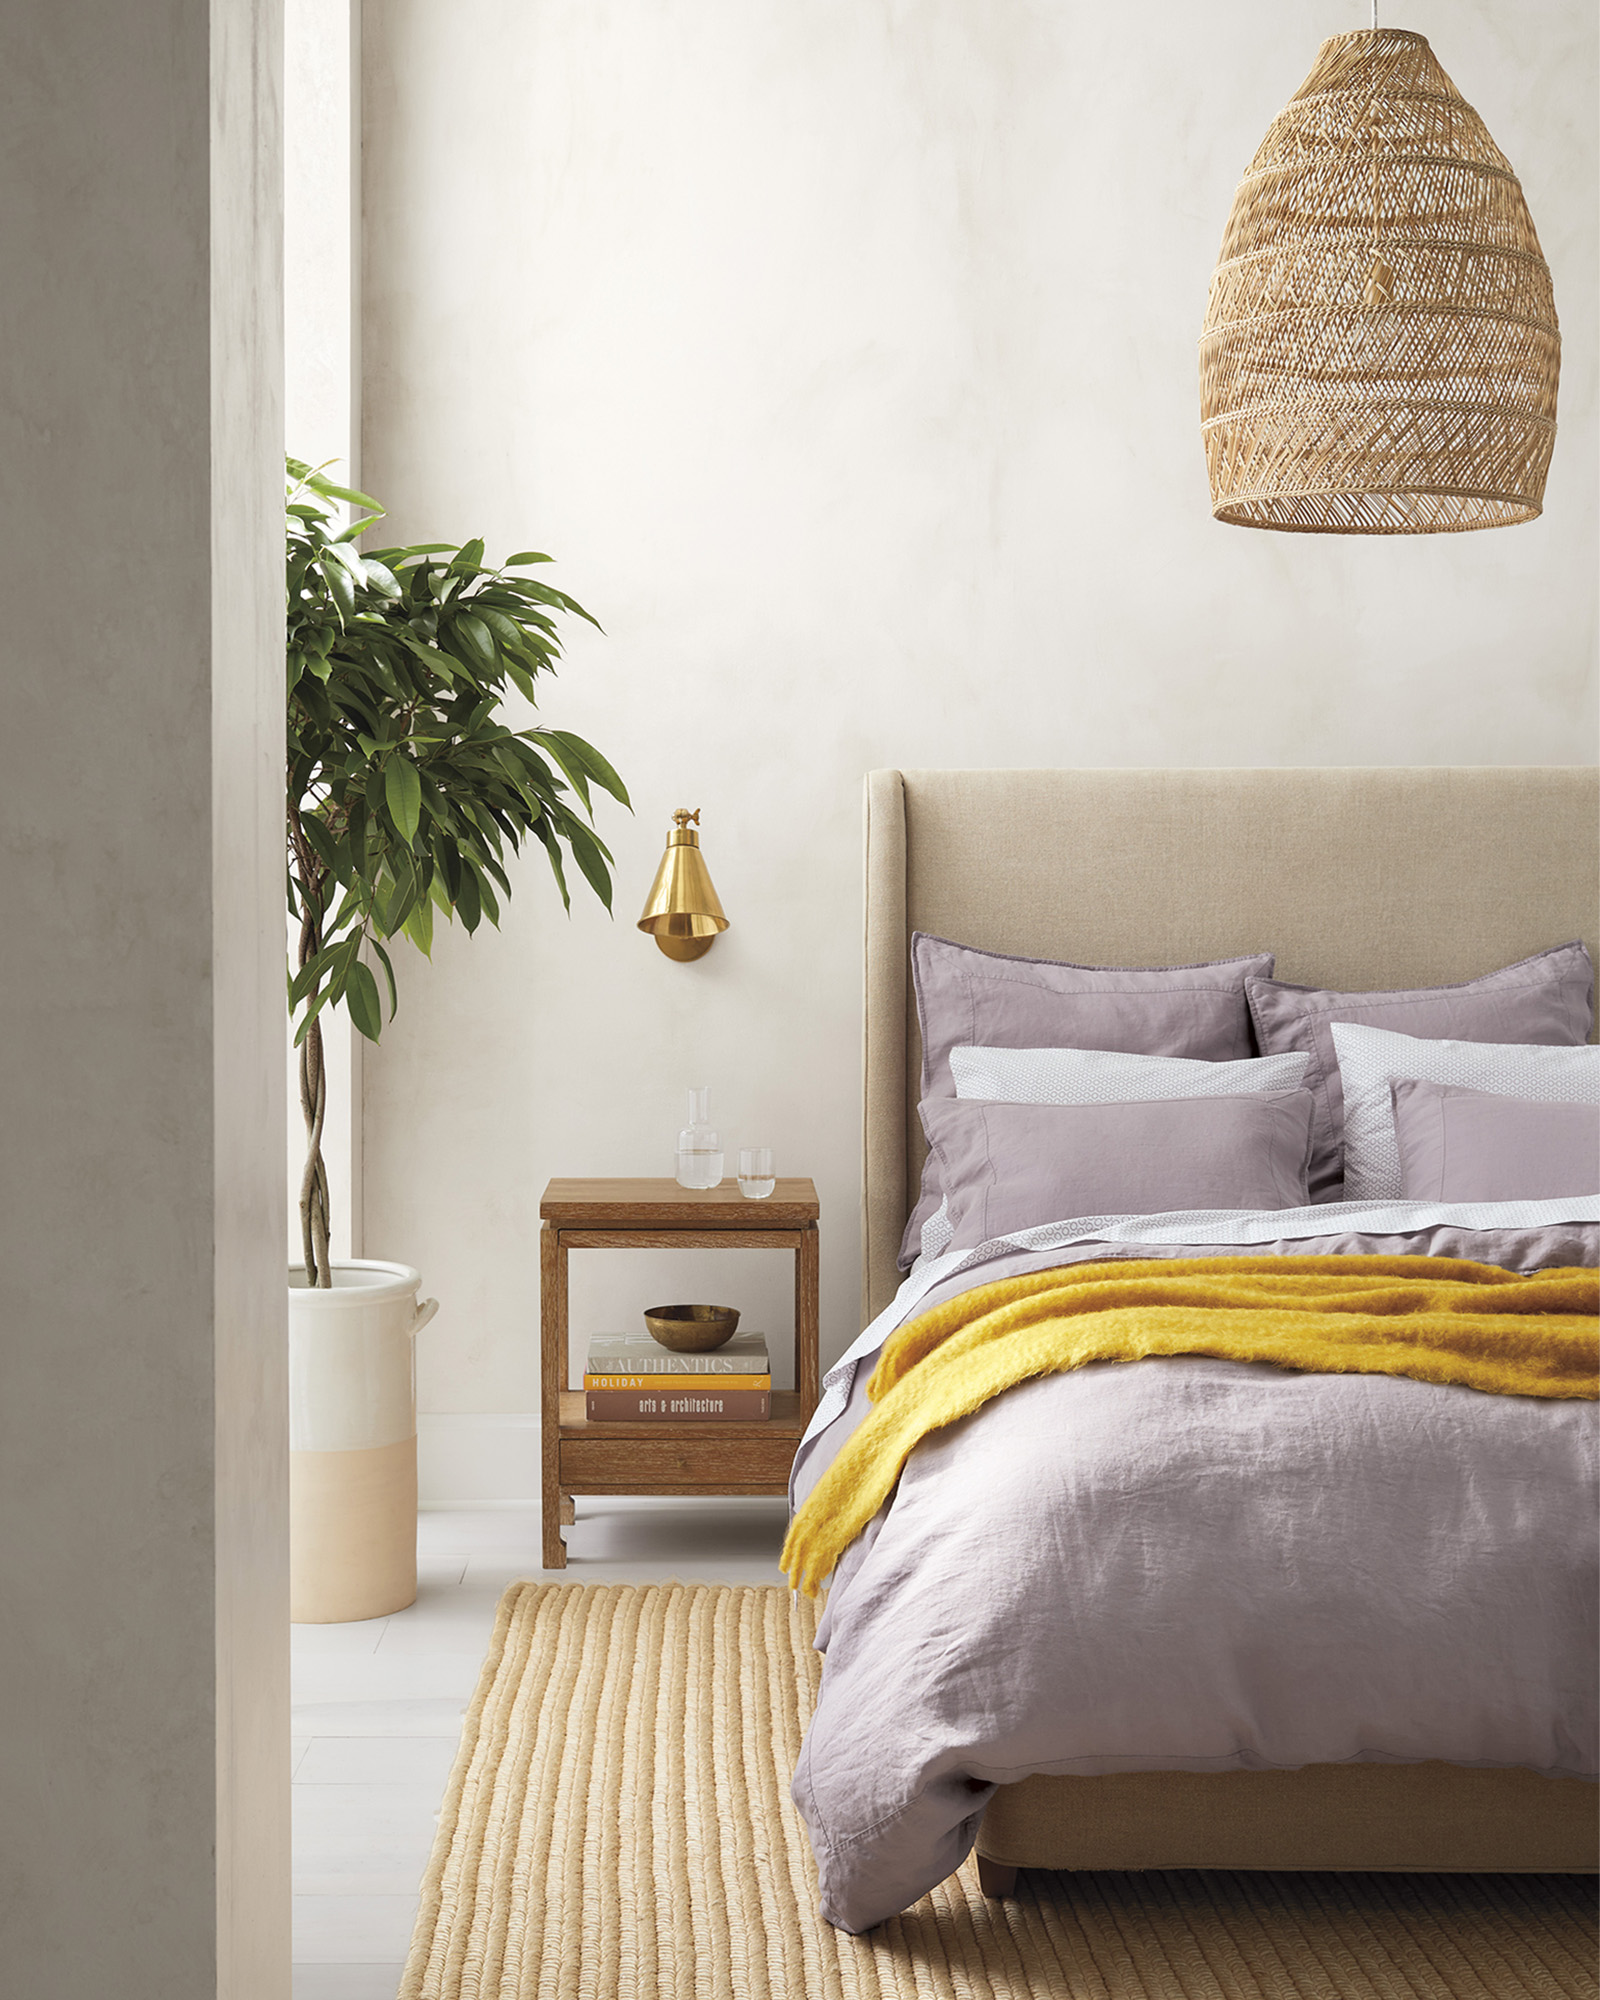 Headlands Bell Pendant from Serena & Lily in a bedroom with earthy neutrals and vibrant gold throw.